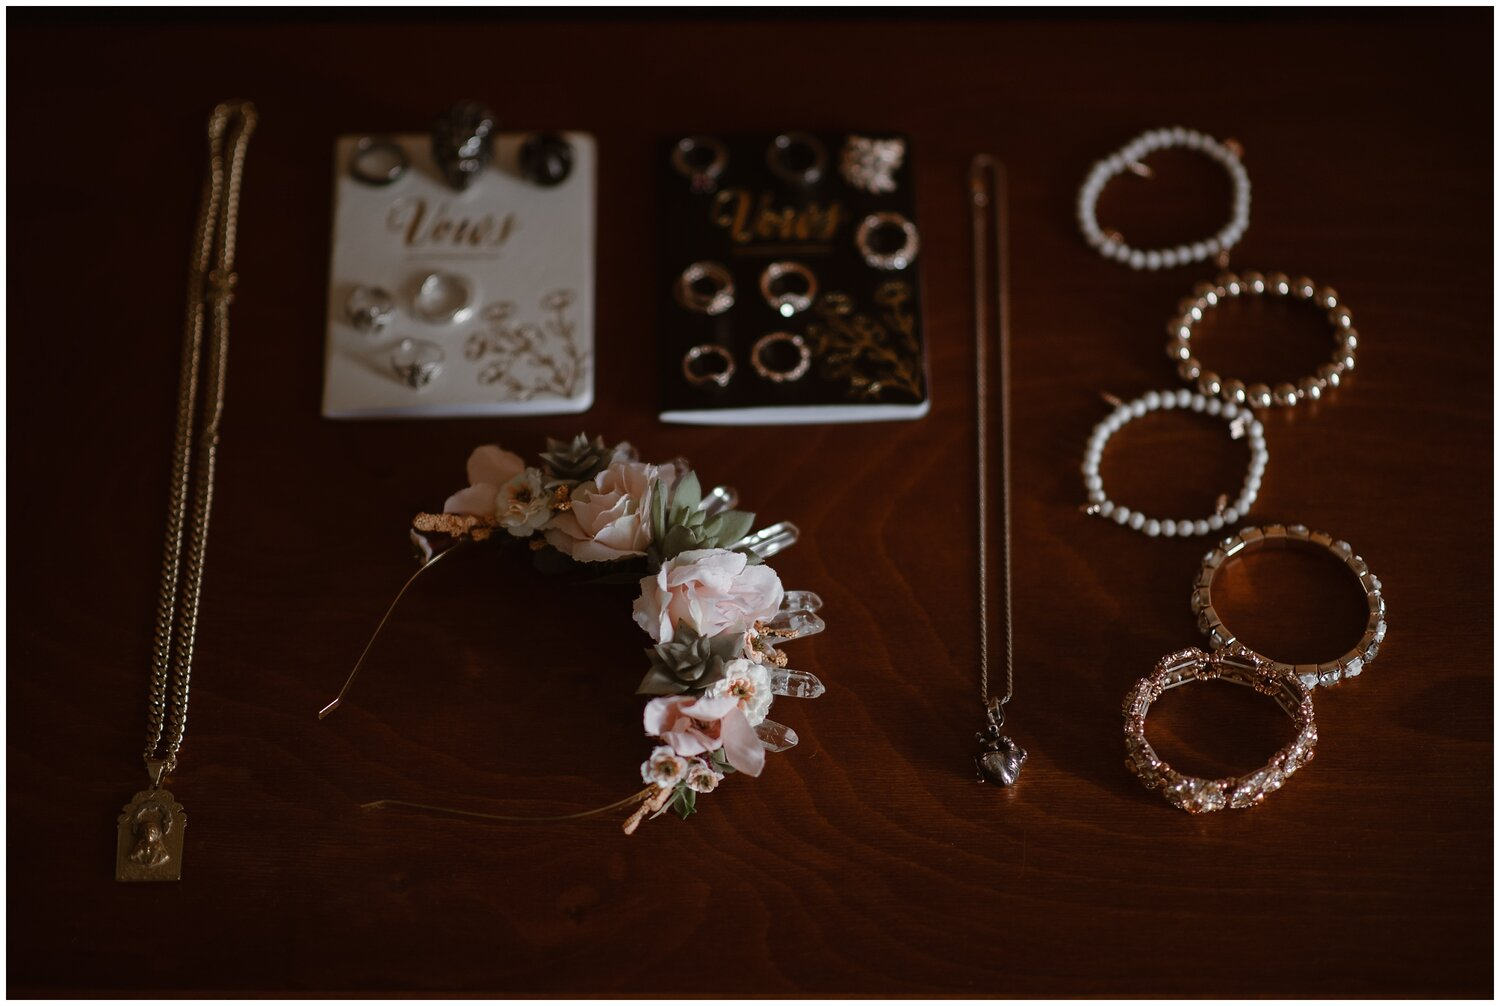 Details for a wedding on a table including a headband, necklaces rings, and vow books.